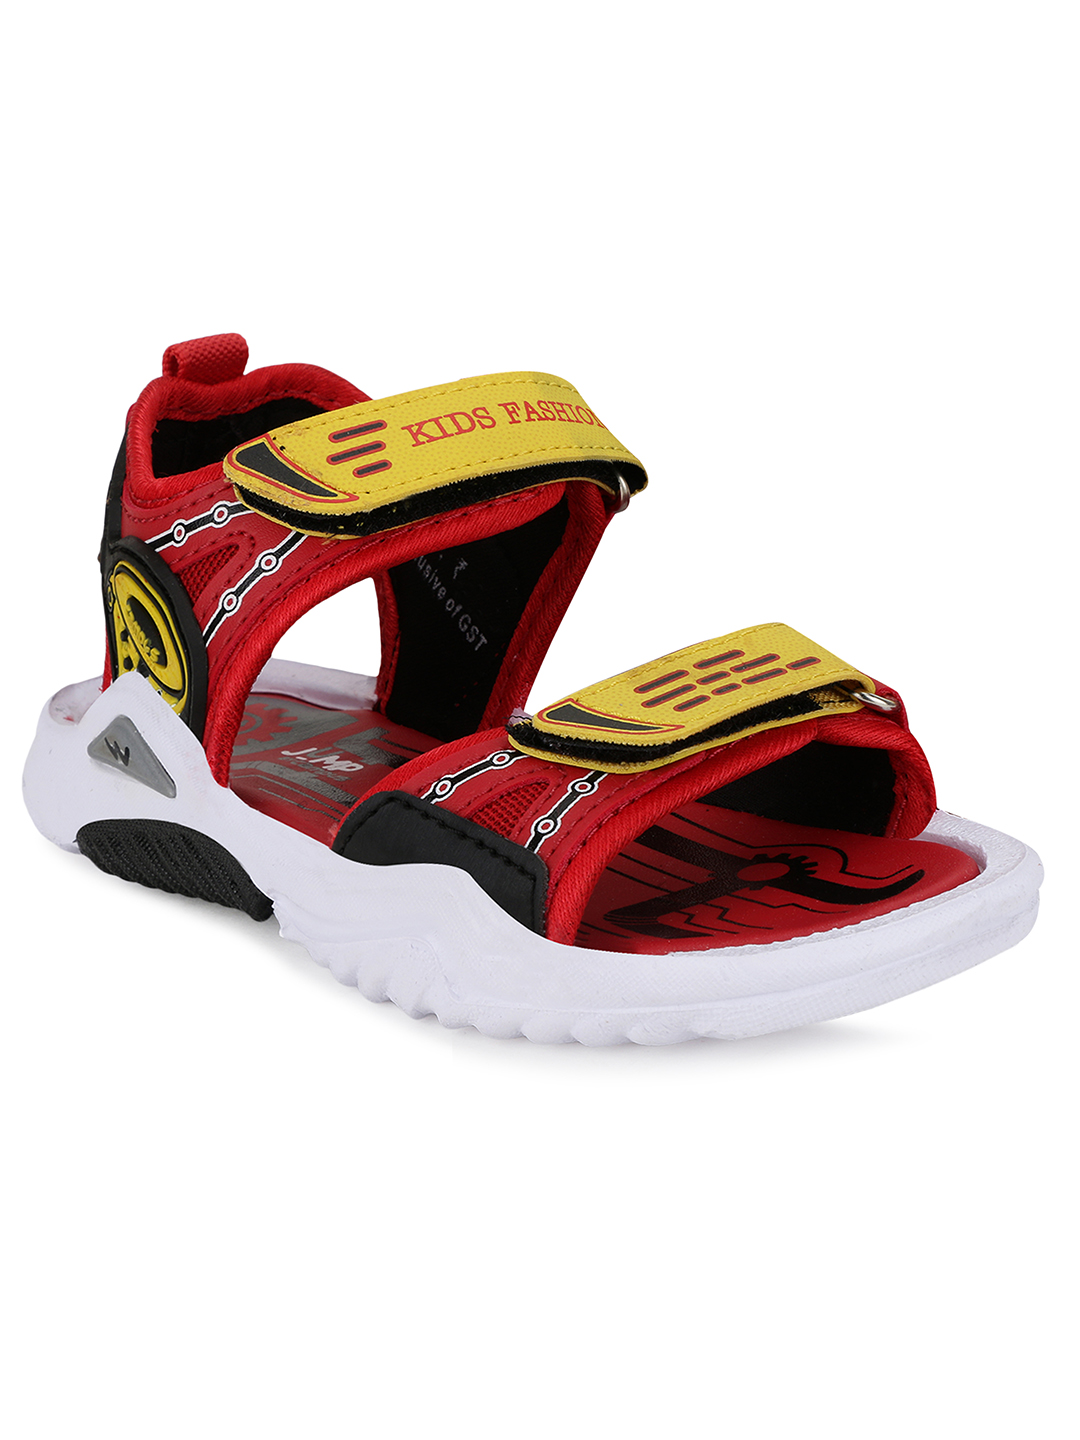 Campus Shoes | Red Sandals